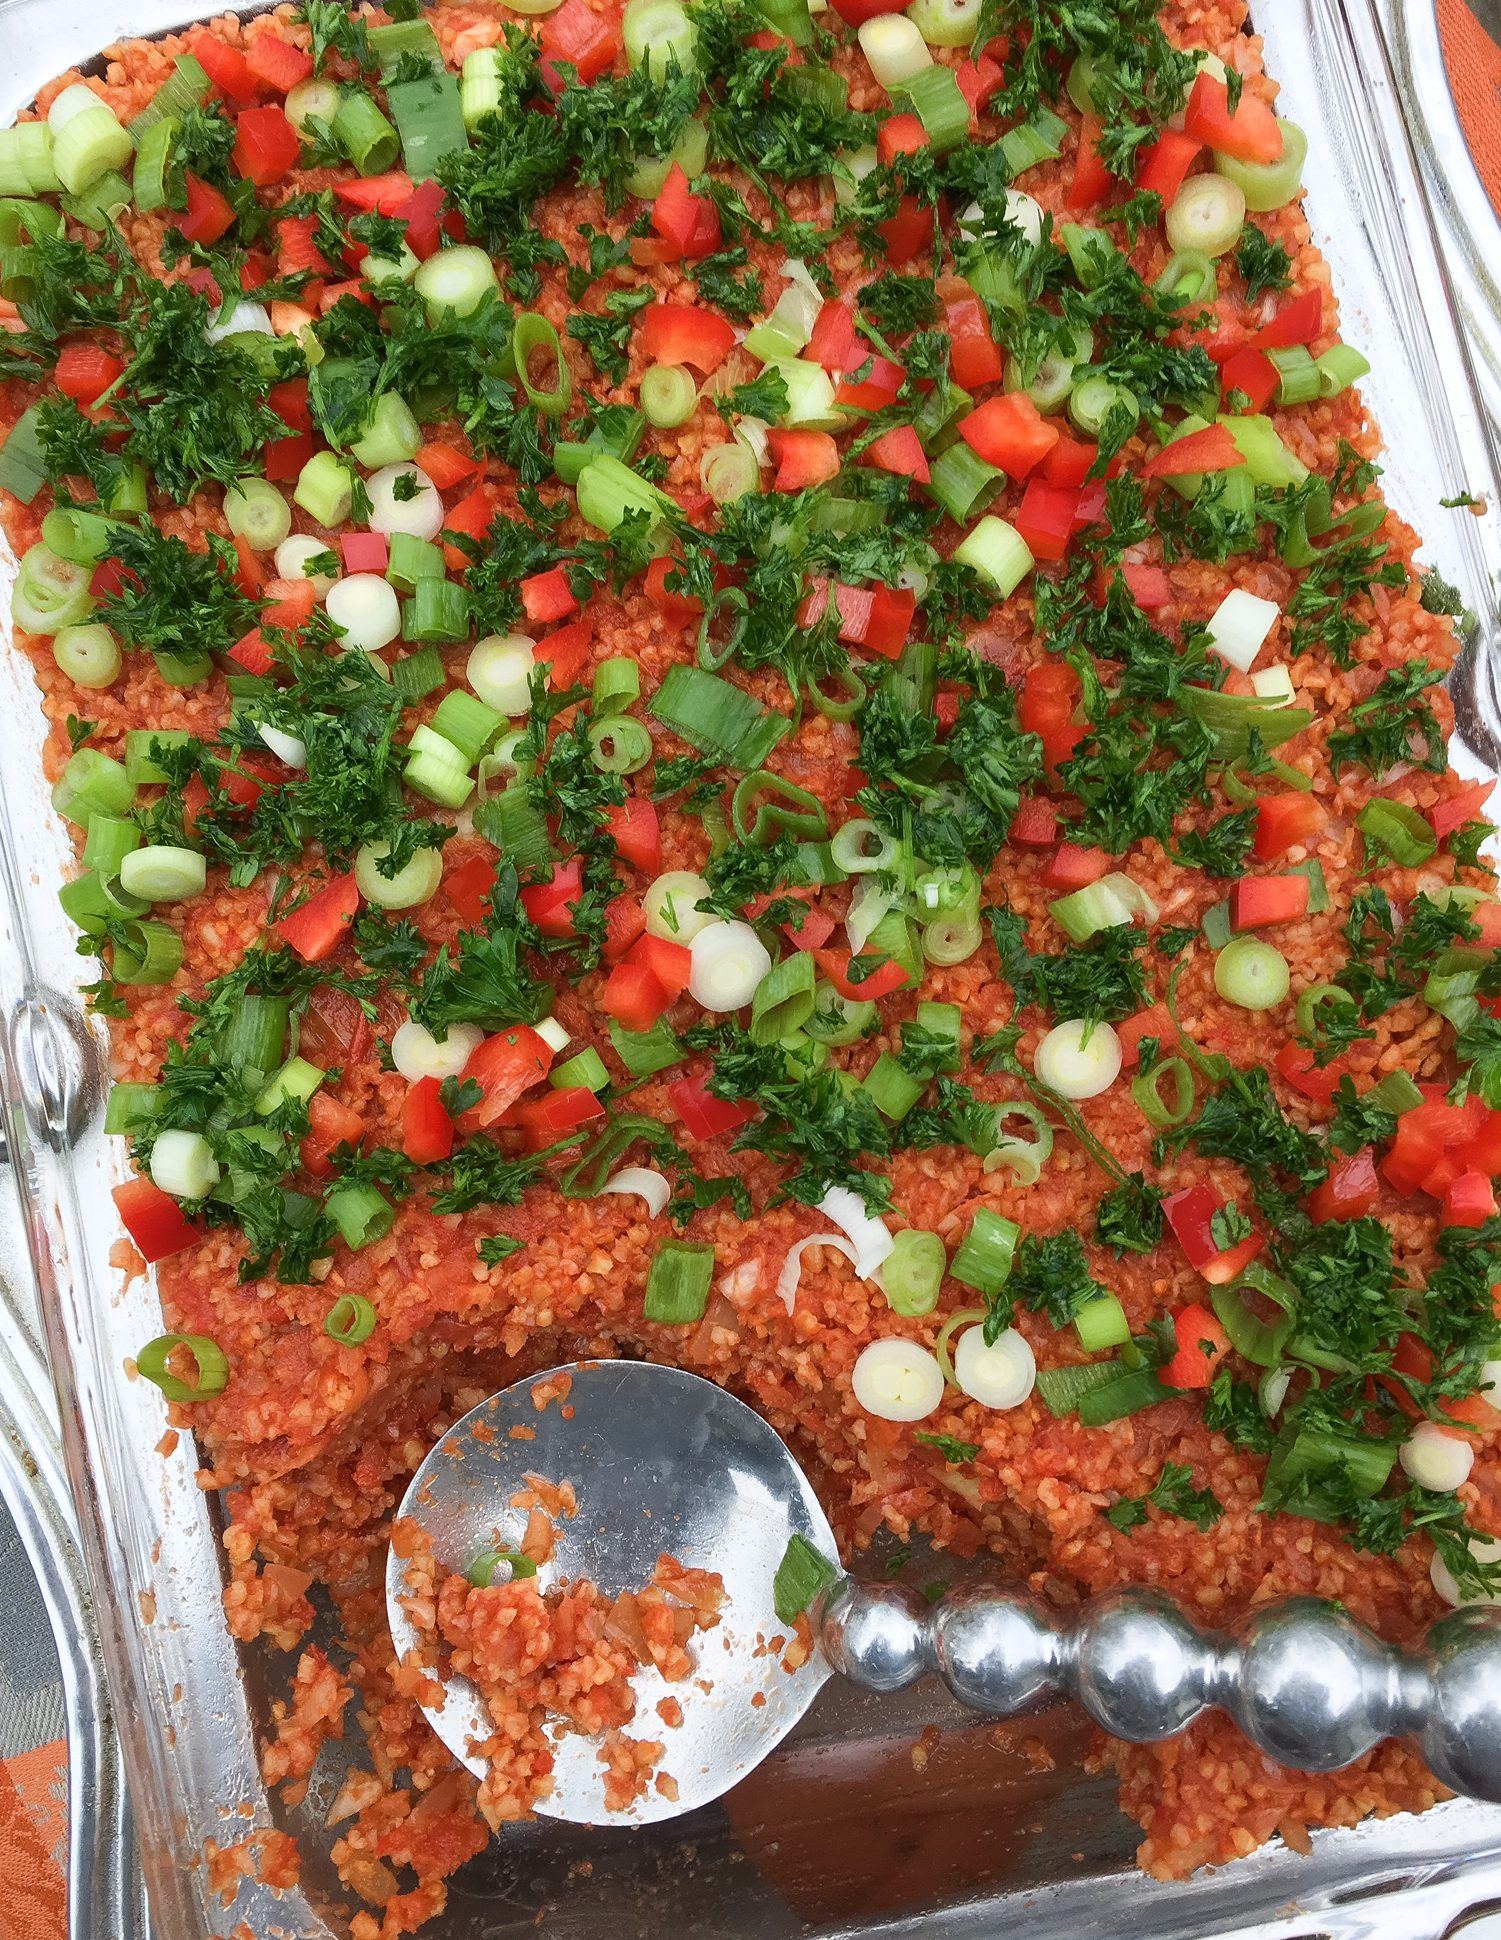 eetch, armenian, armenian food, bulgur, green onion, parsley